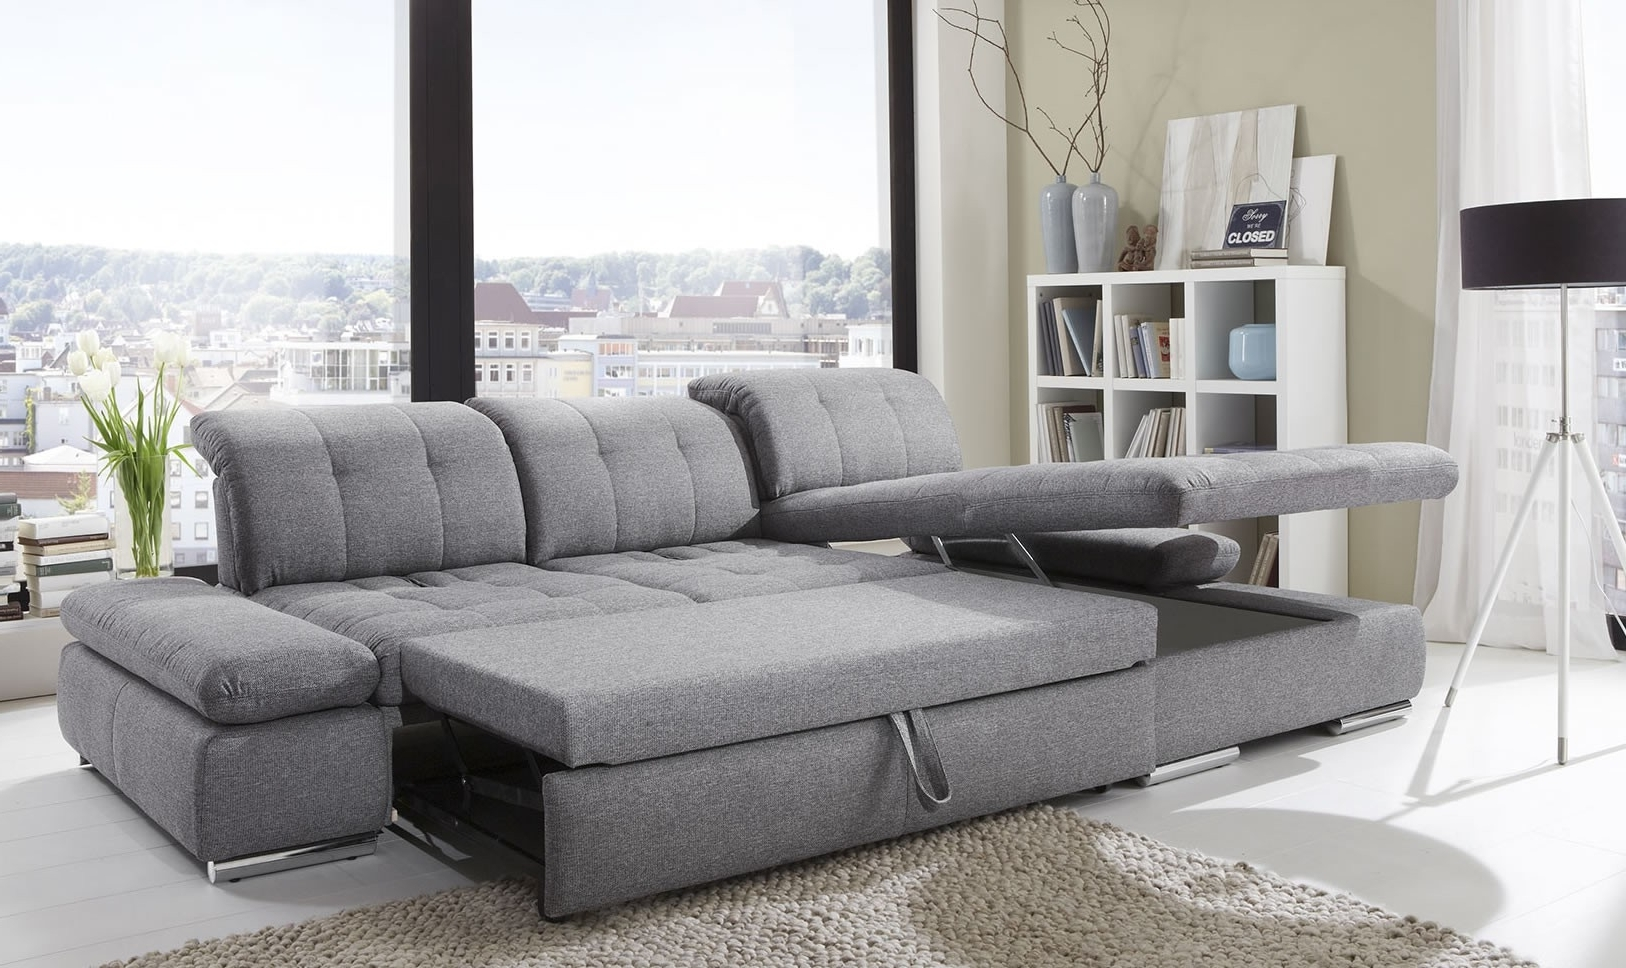 Well Liked Alpine Sectional Sleeper Sofa, Left Arm Chaise Facing, Black Intended For Sleeper Chaises (View 10 of 15)